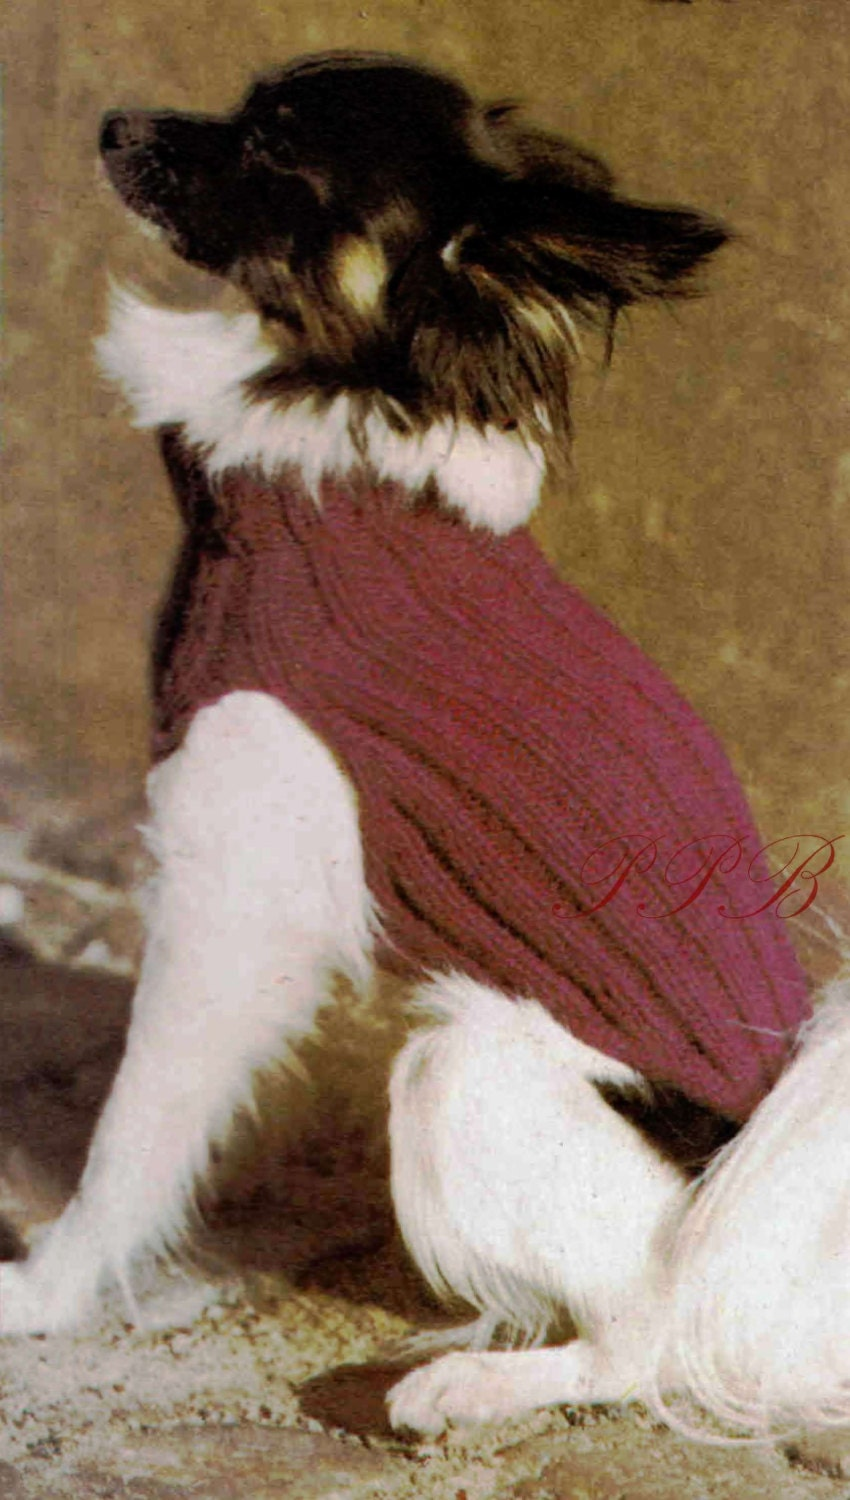 Knitting Coats For Dogs : Knitted dog coat small pattern pdf knitting